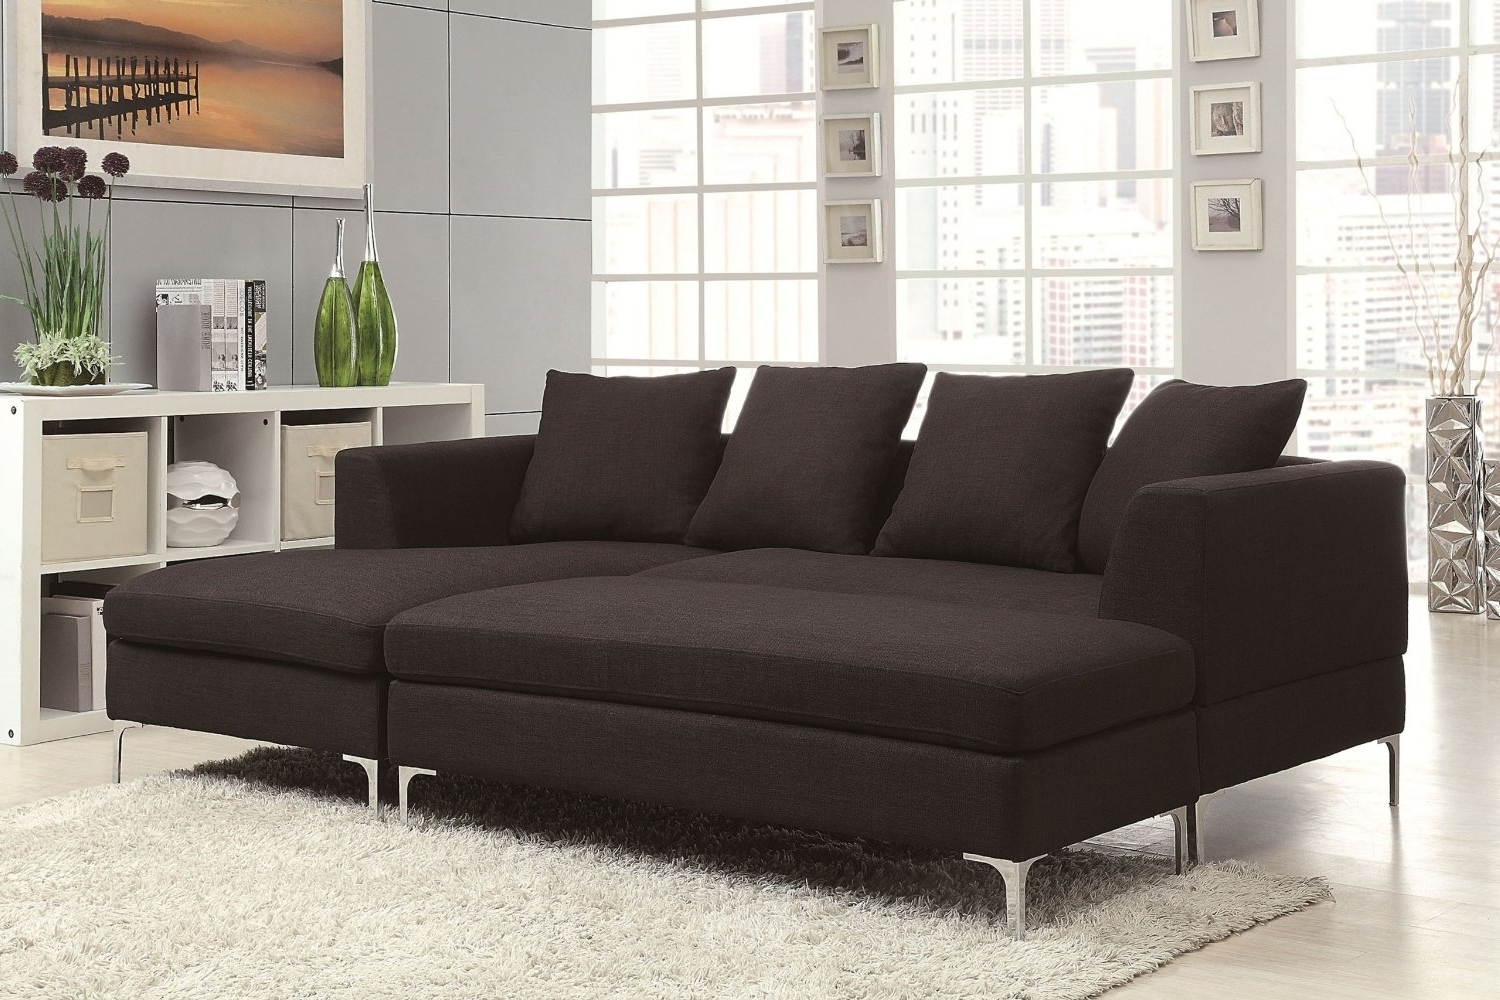 Sectional Sofa Design: Amazing Sofa Chaise Sectional Leather Inside Preferred Sectional Sofa Chaises (View 13 of 15)